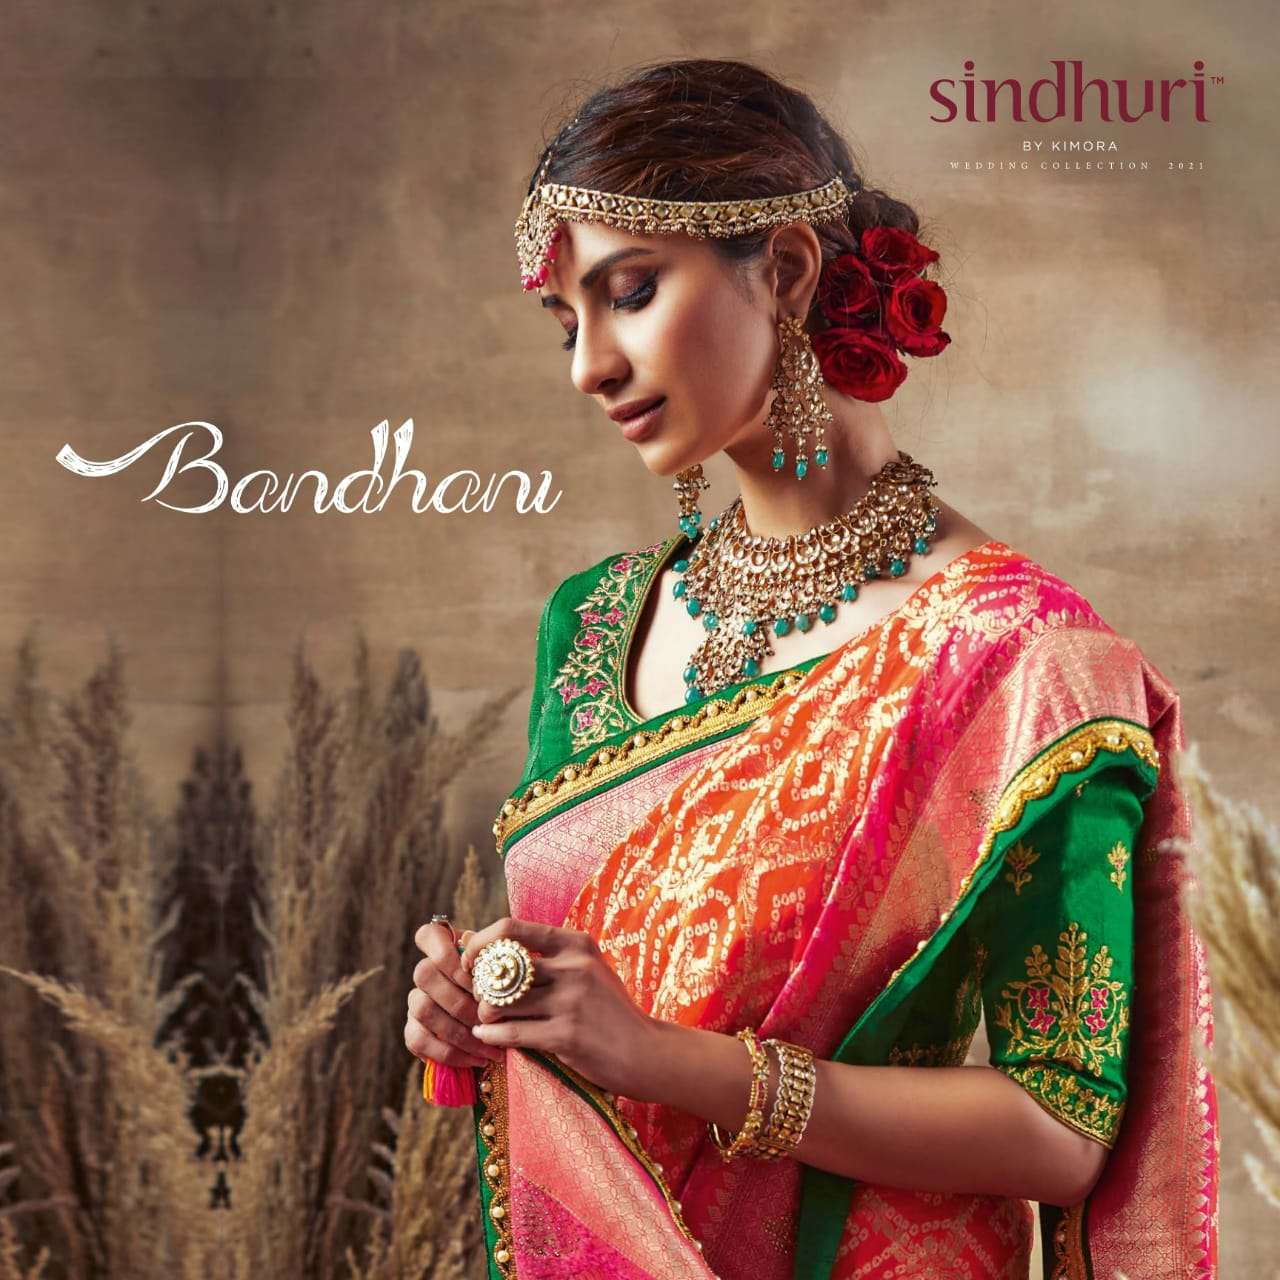 Kimora Sindhuri Bandhani Silk With Bandhej Print With Thread Work Heavy Sarees Collection